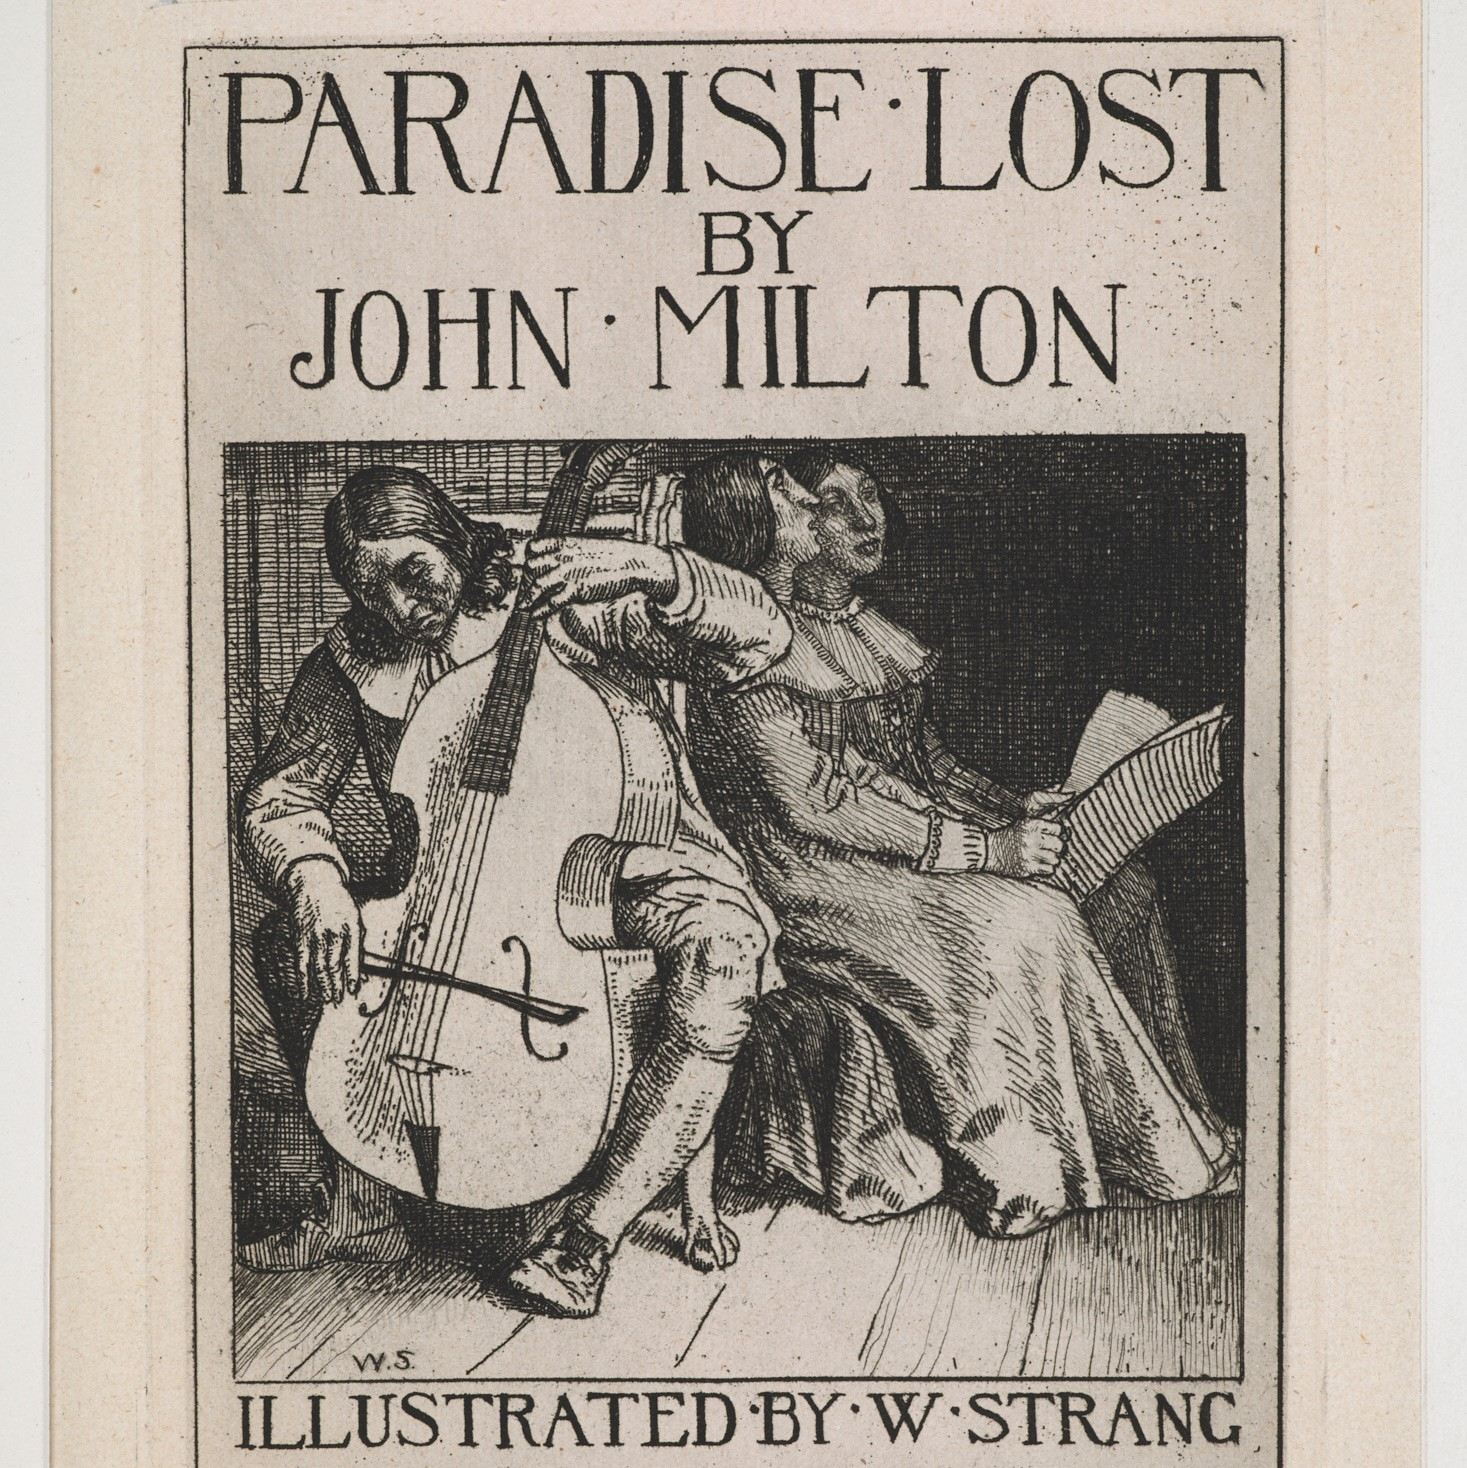 Frontispiece of Paradise Lost